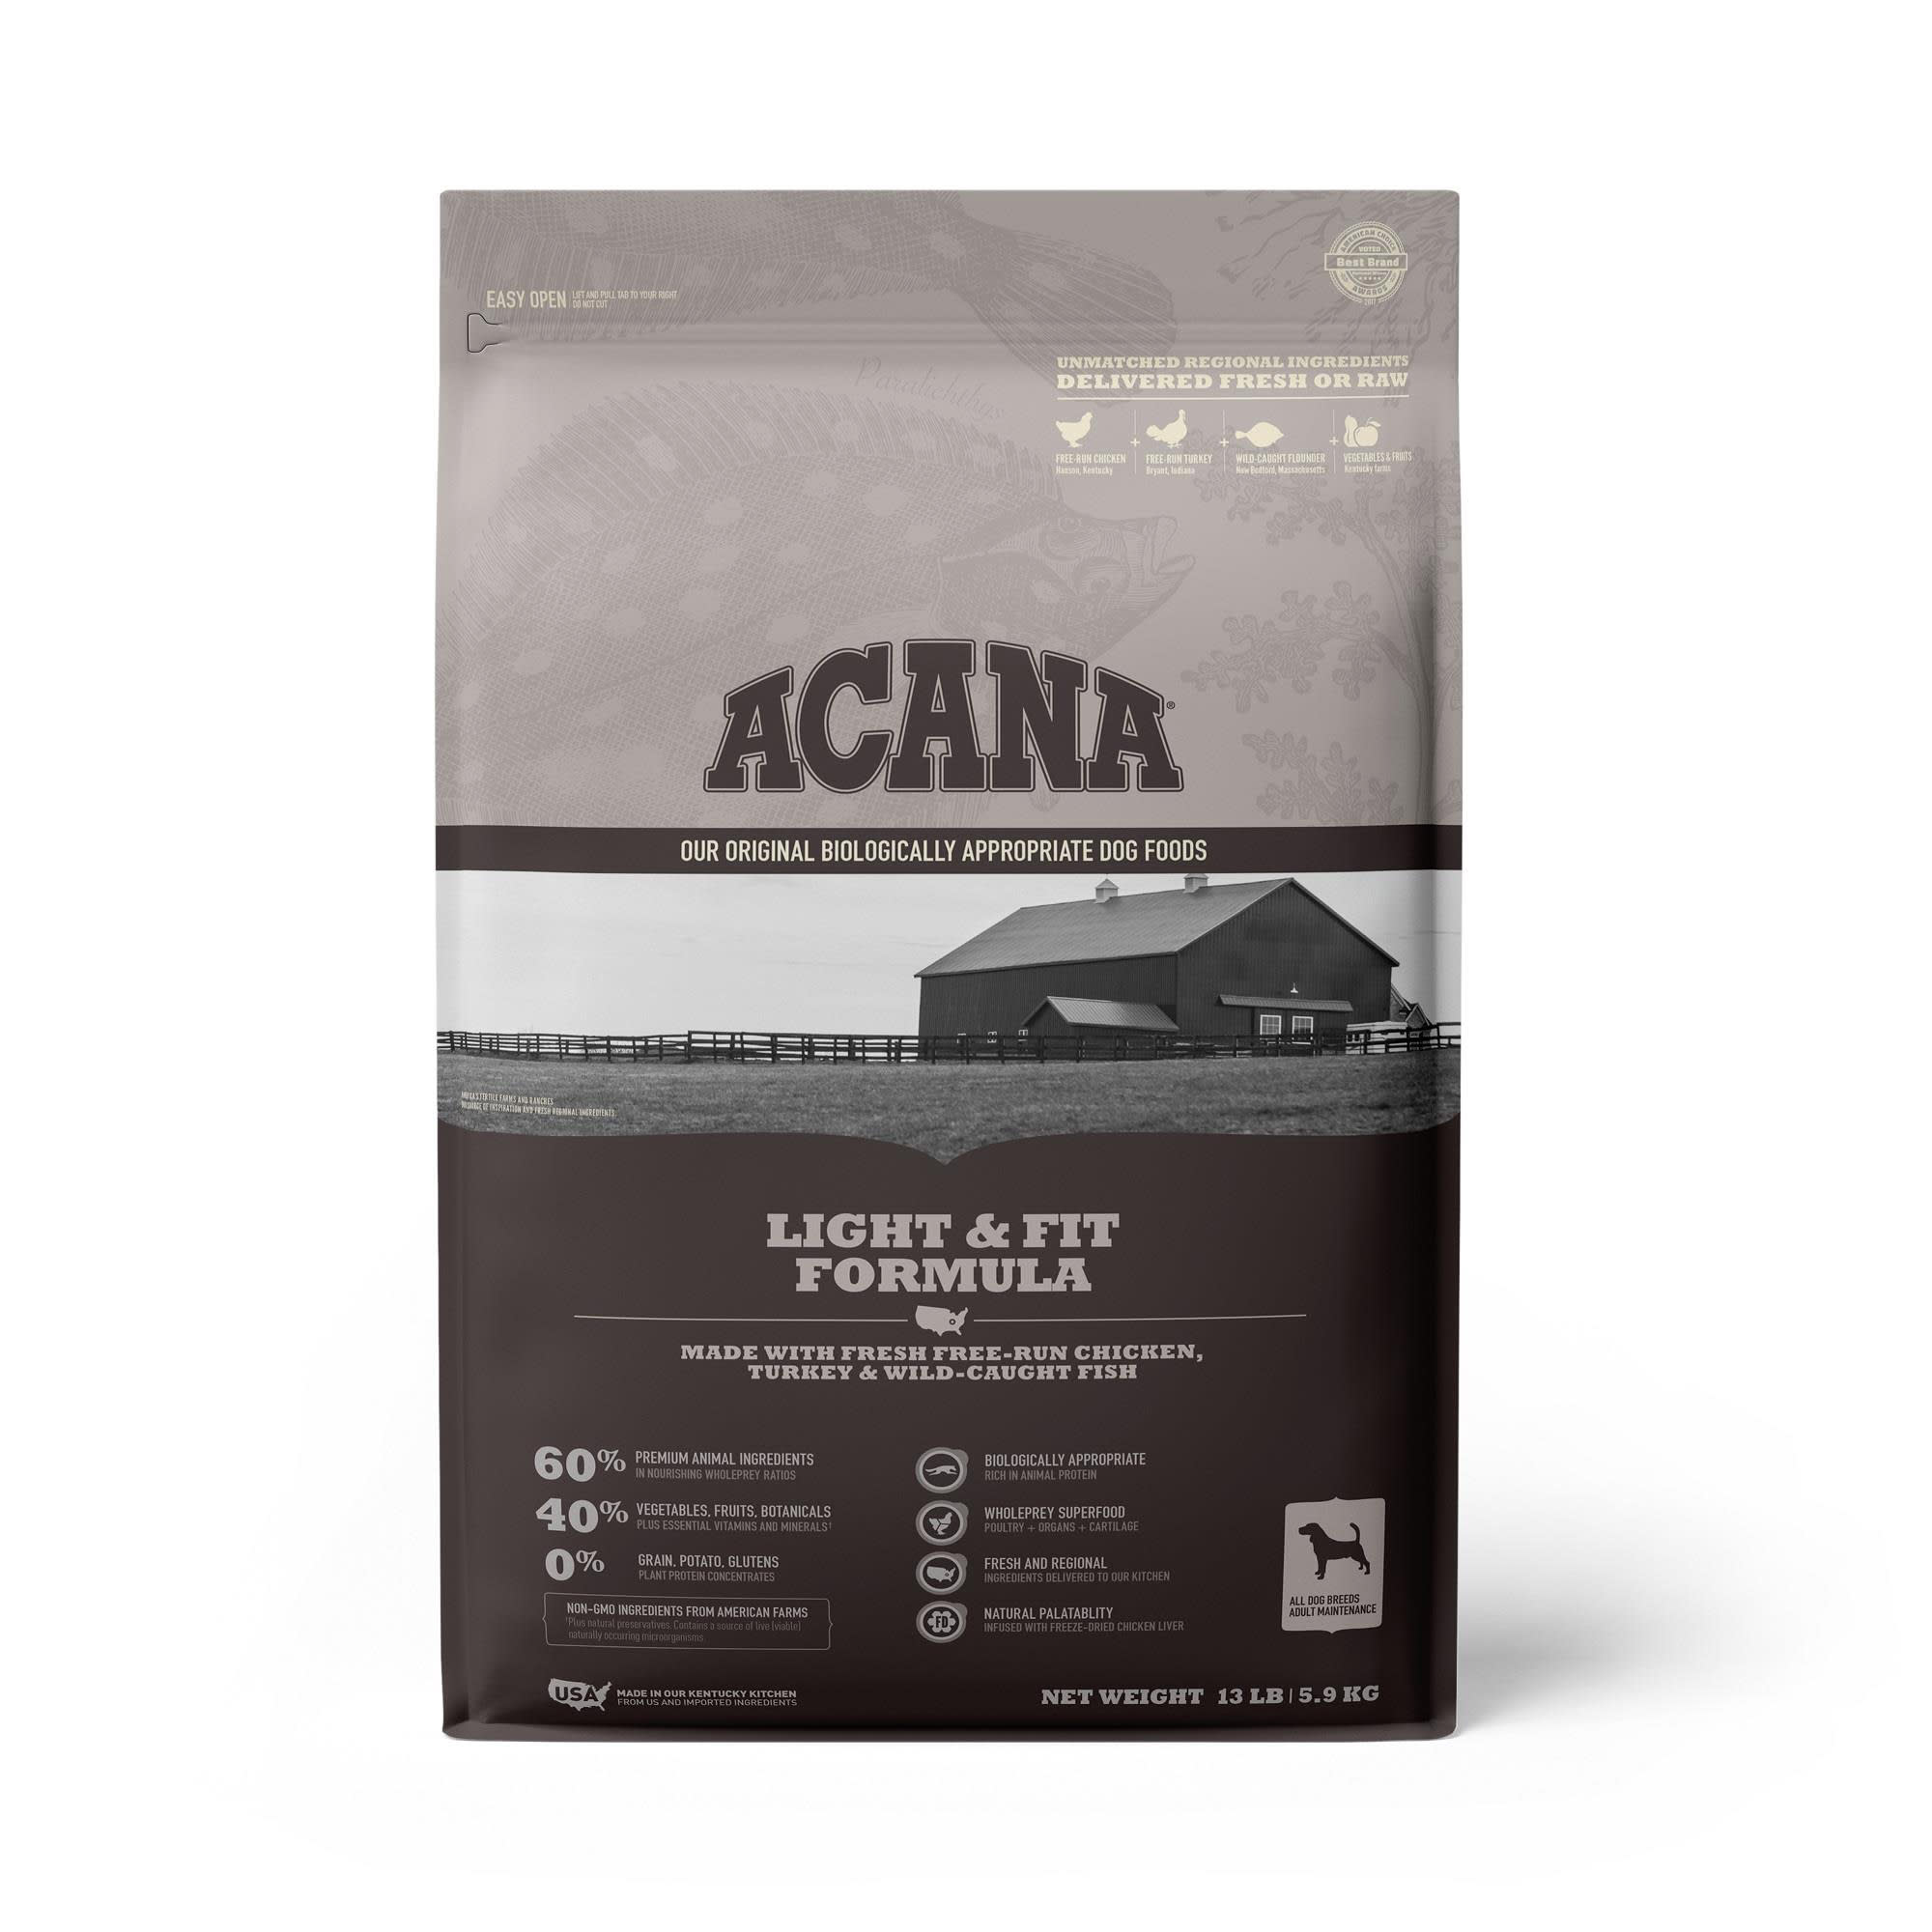 ACANA Grain-Free Light & Fit to support Healthy Weight Adult Dry Dog Food